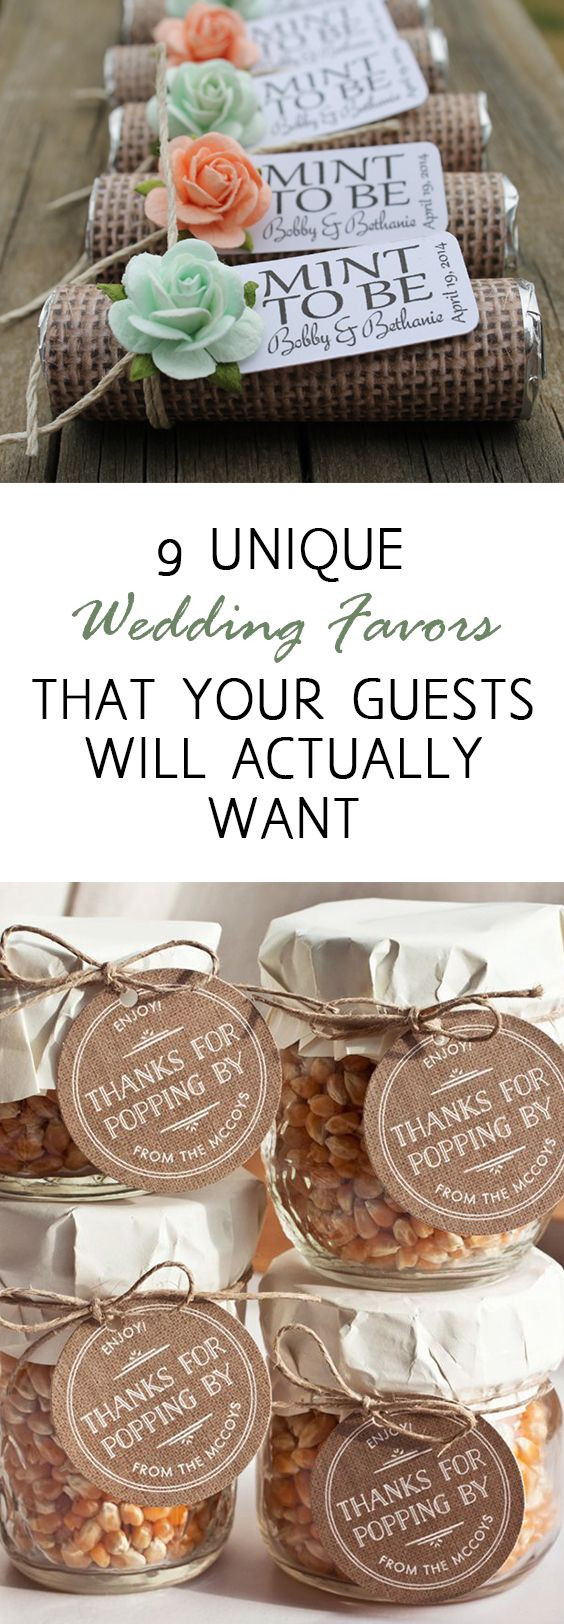 Best ideas about DIY Wedding Favor Ideas . Save or Pin 9 Unique Wedding Favors that Your Guests Will Actually Now.